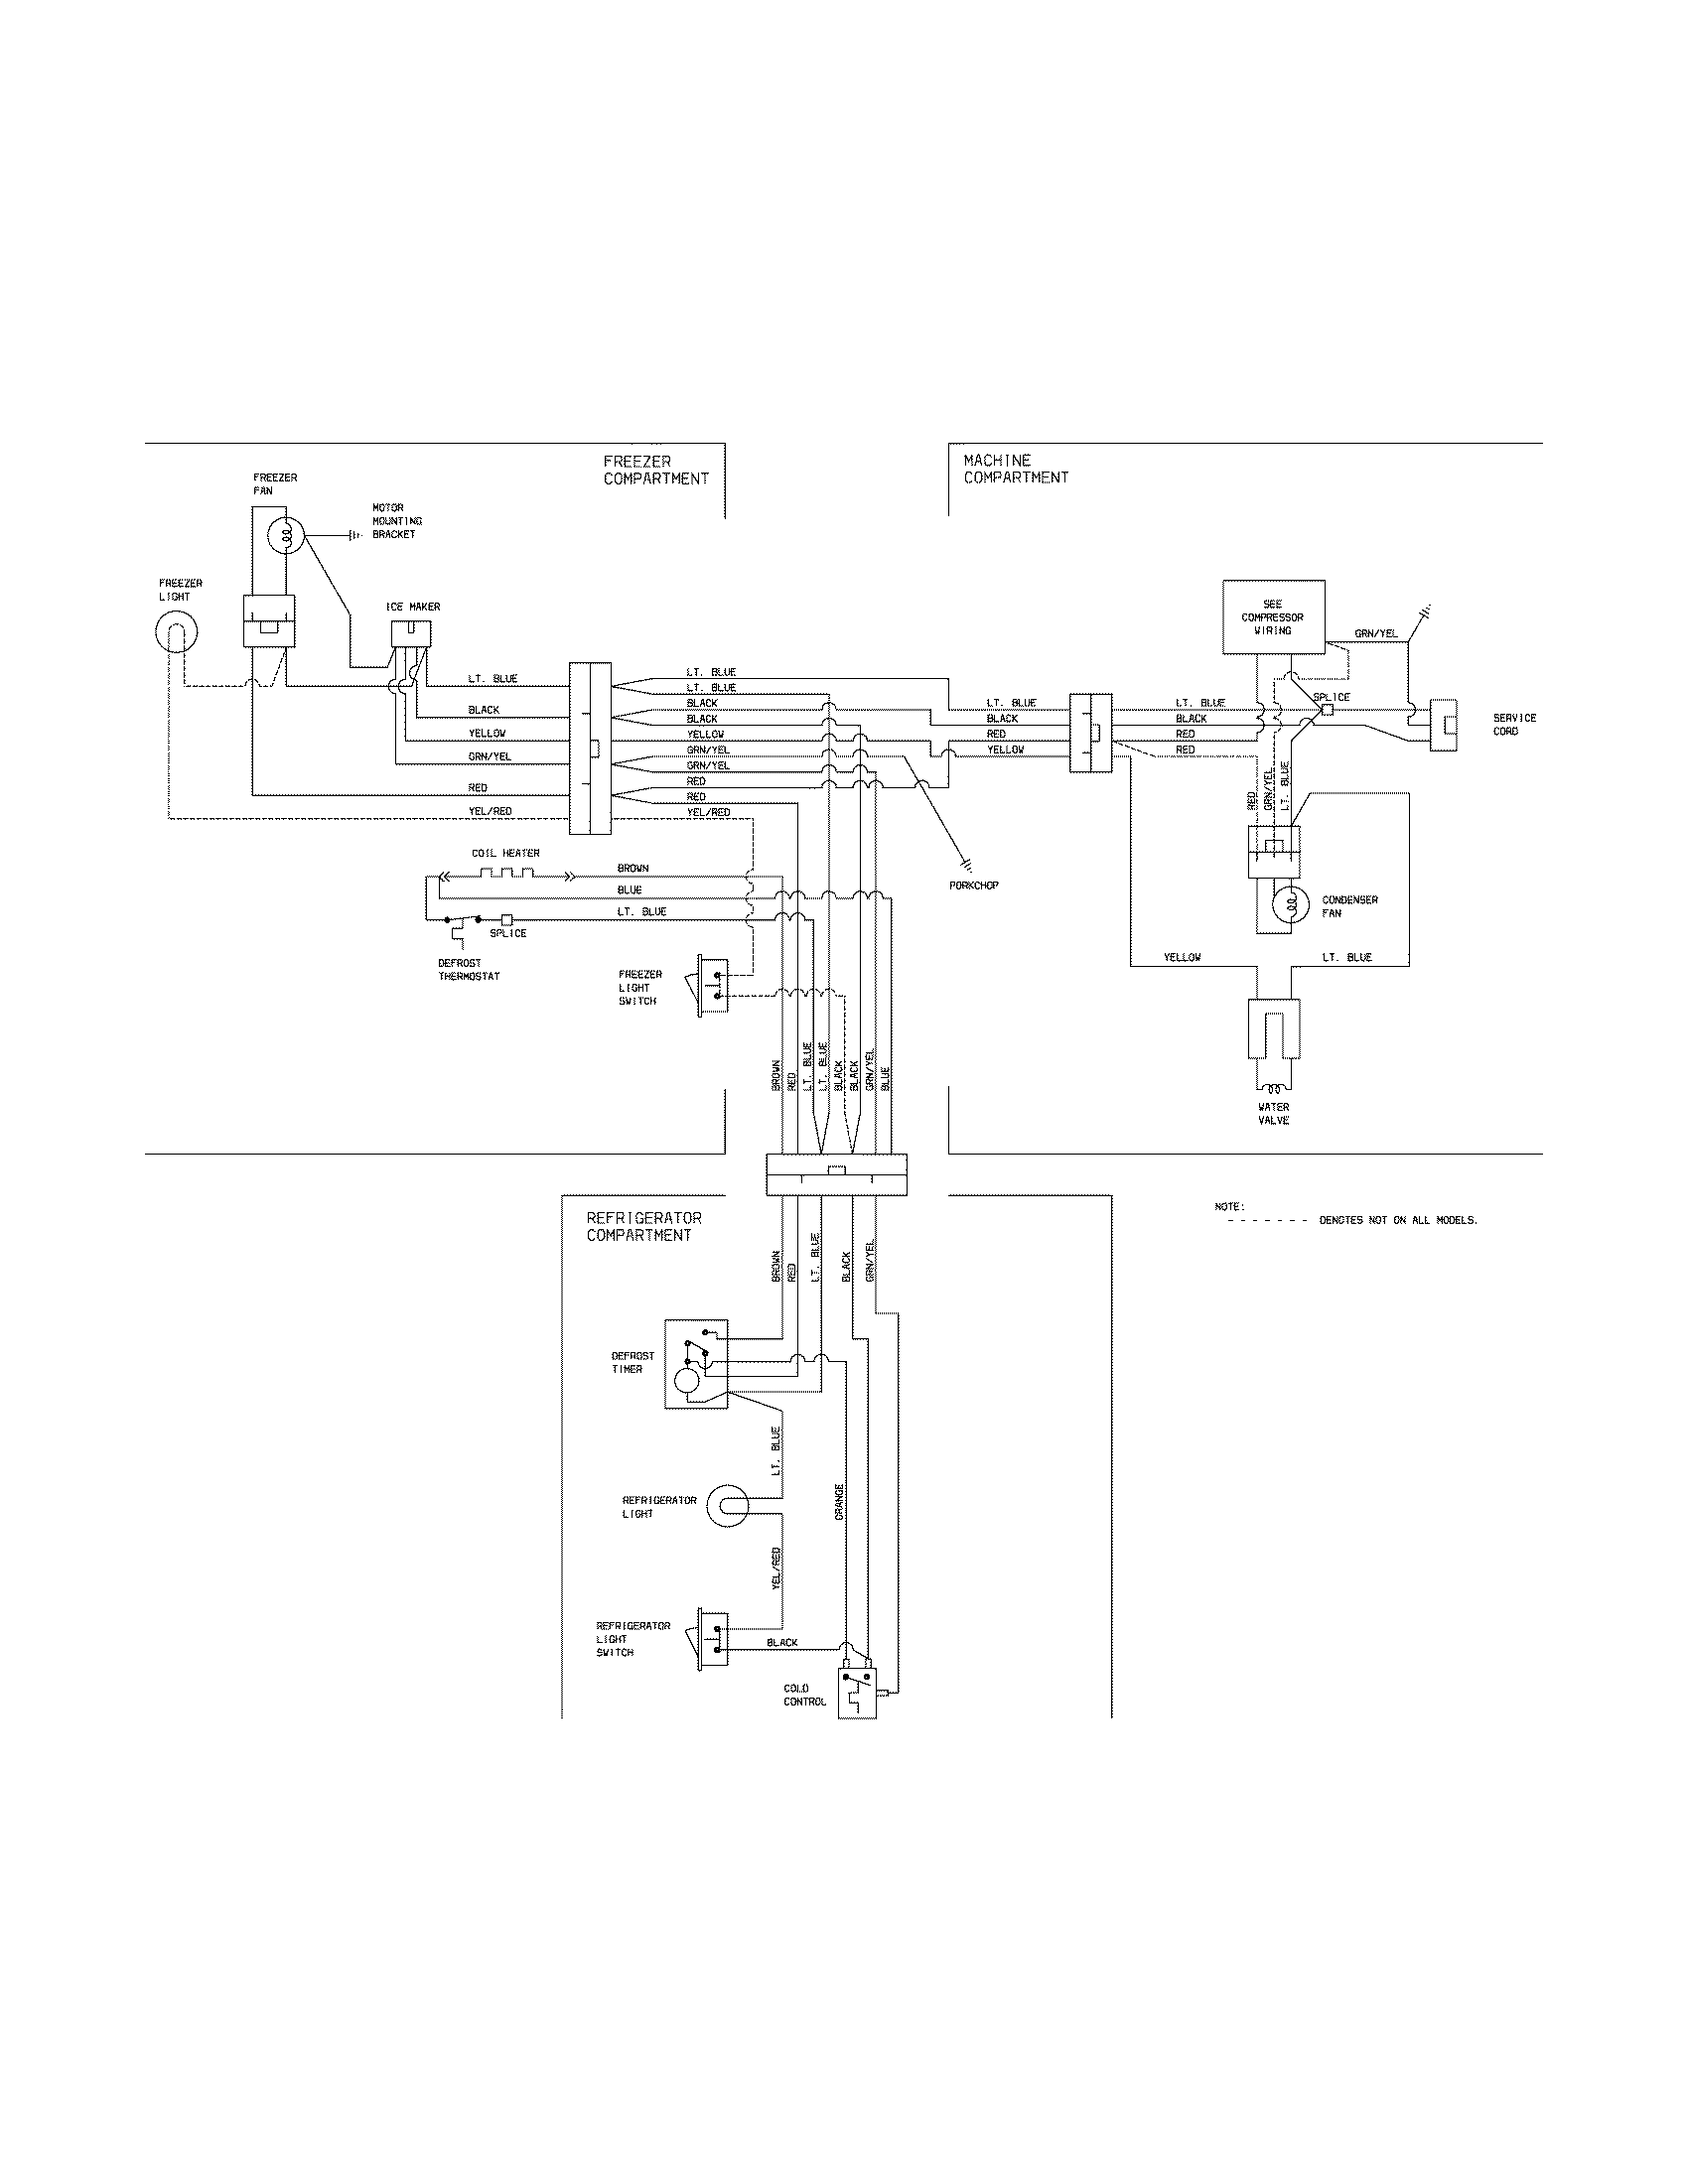 Kenmore Refrigerator Wire Diagram Model 253 : 43 Wiring